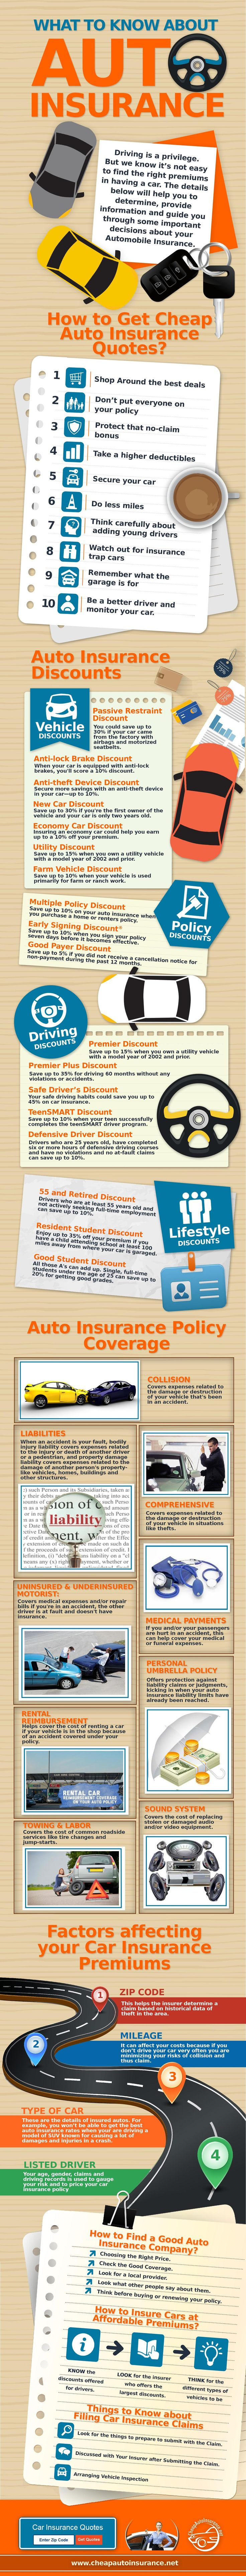 what to know about automobile insurance infographic